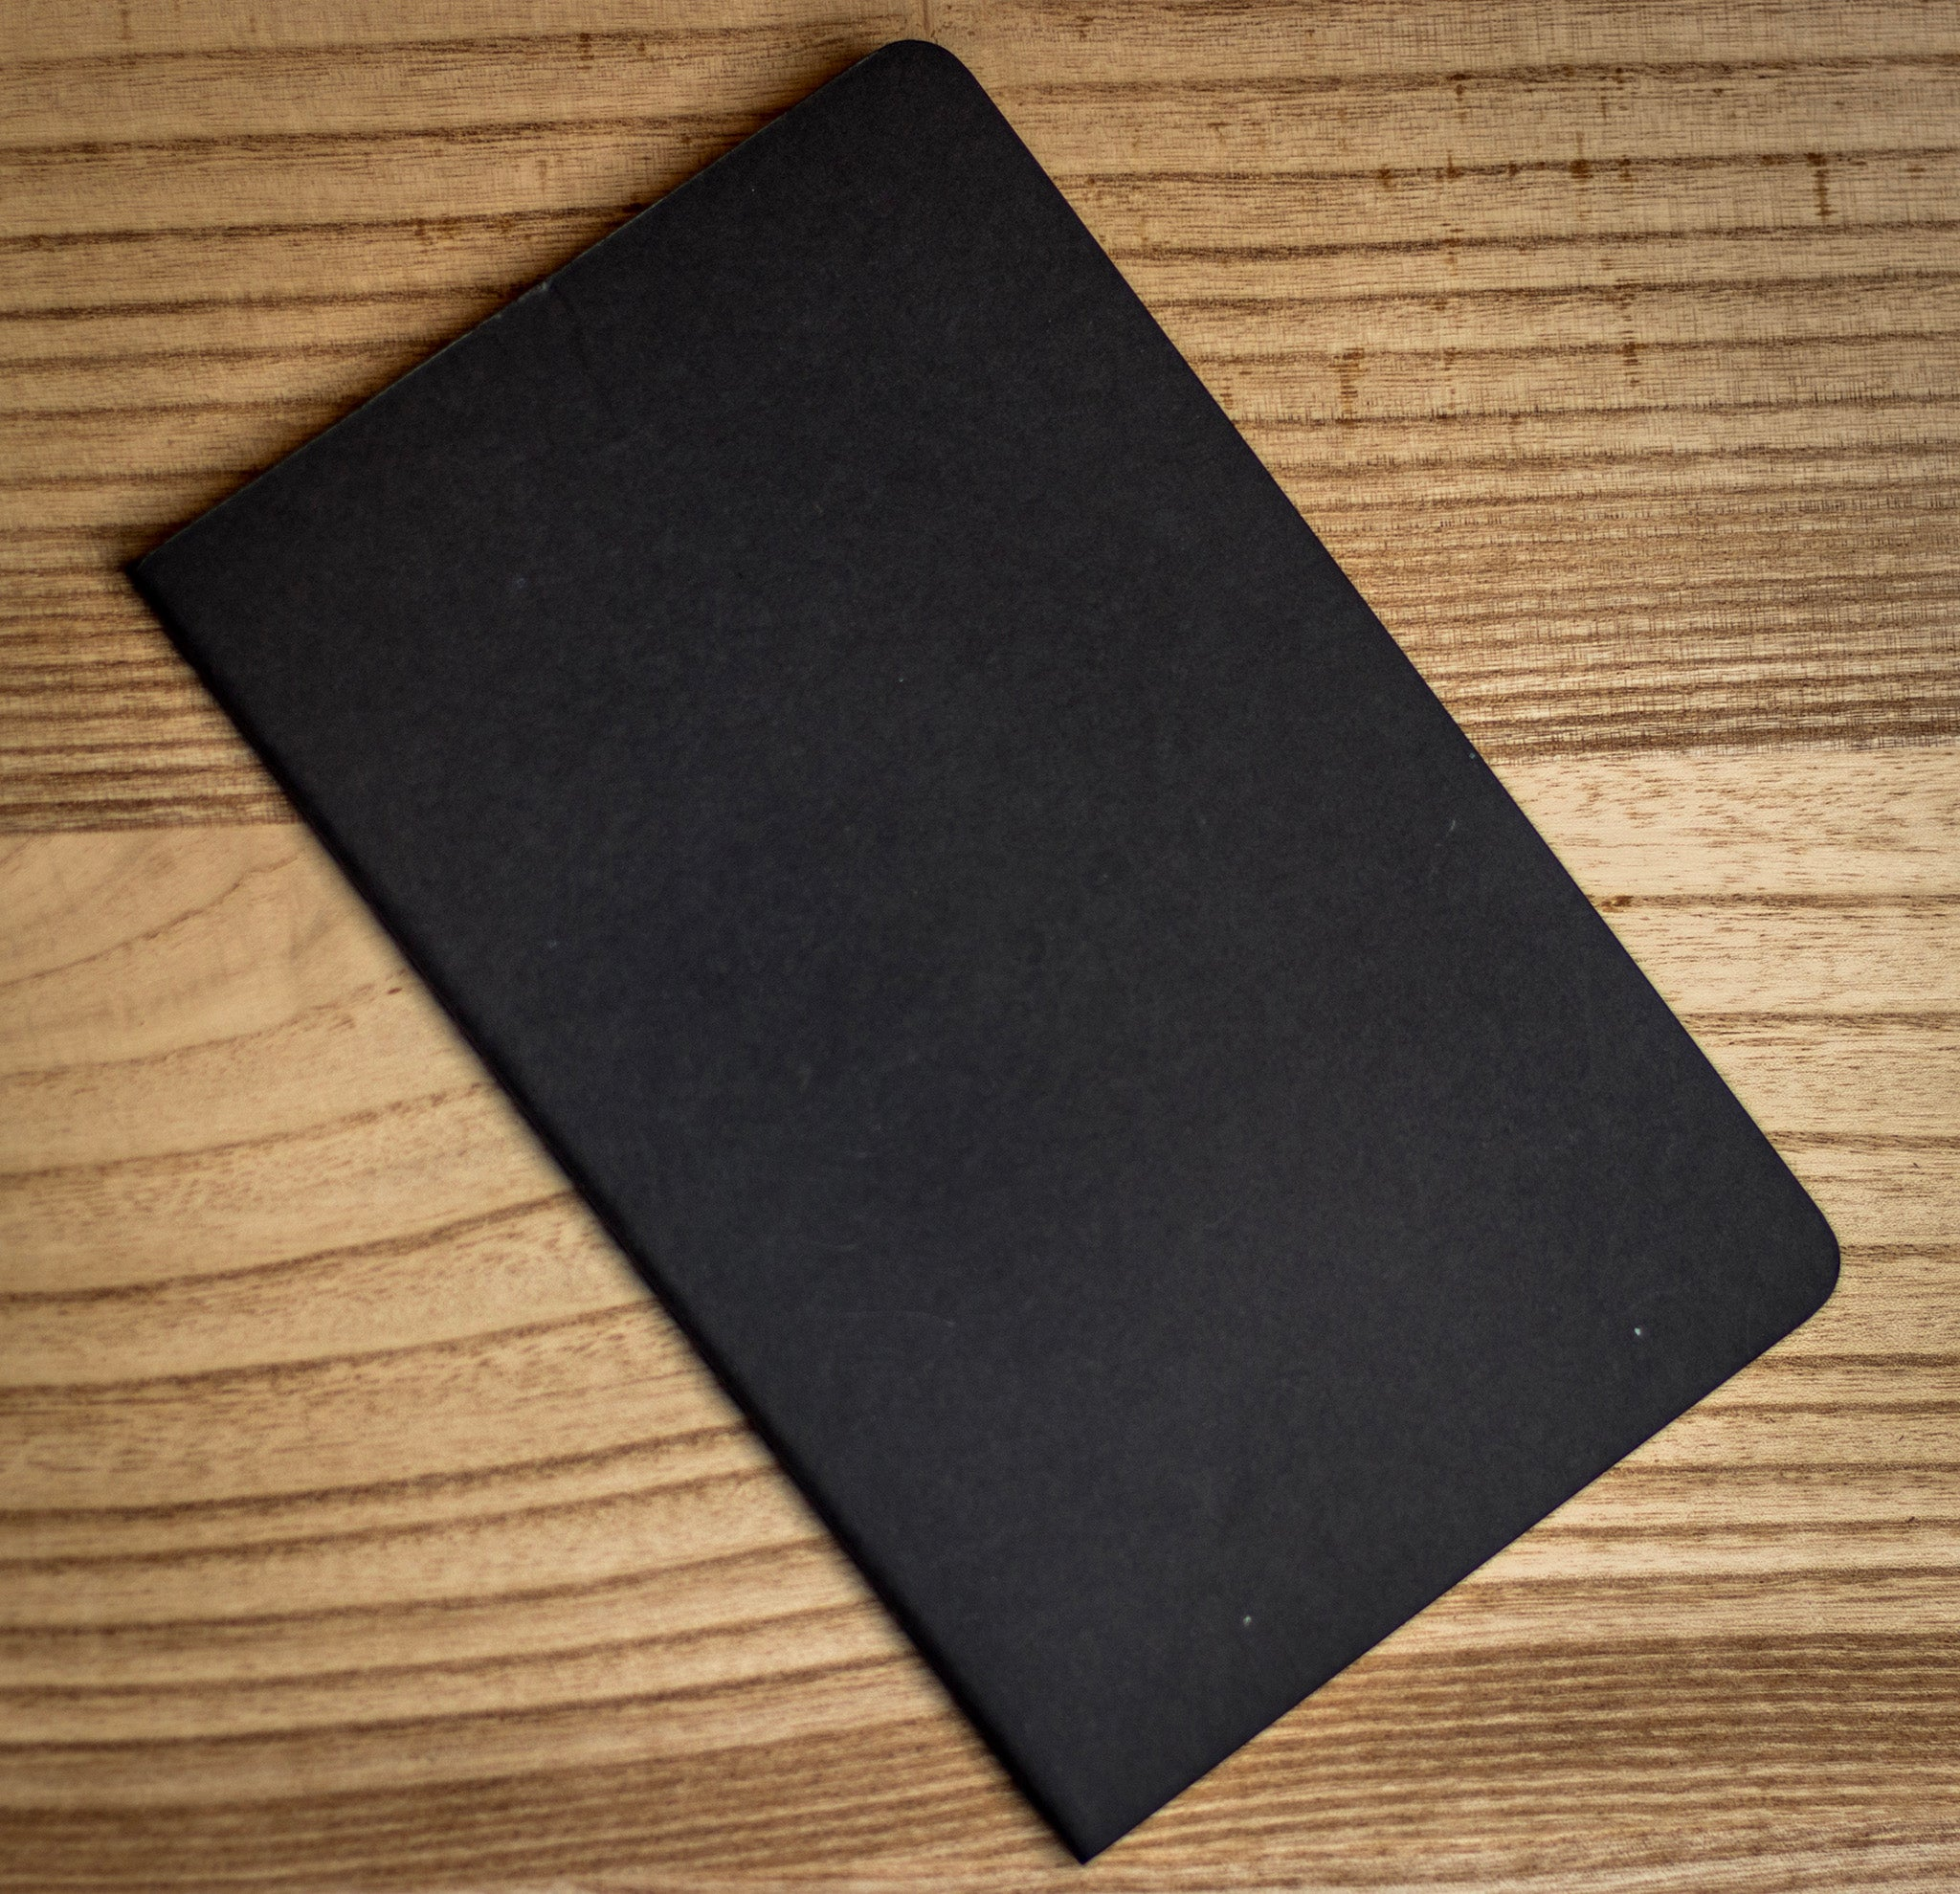 Black Moleskine ruled notebook.